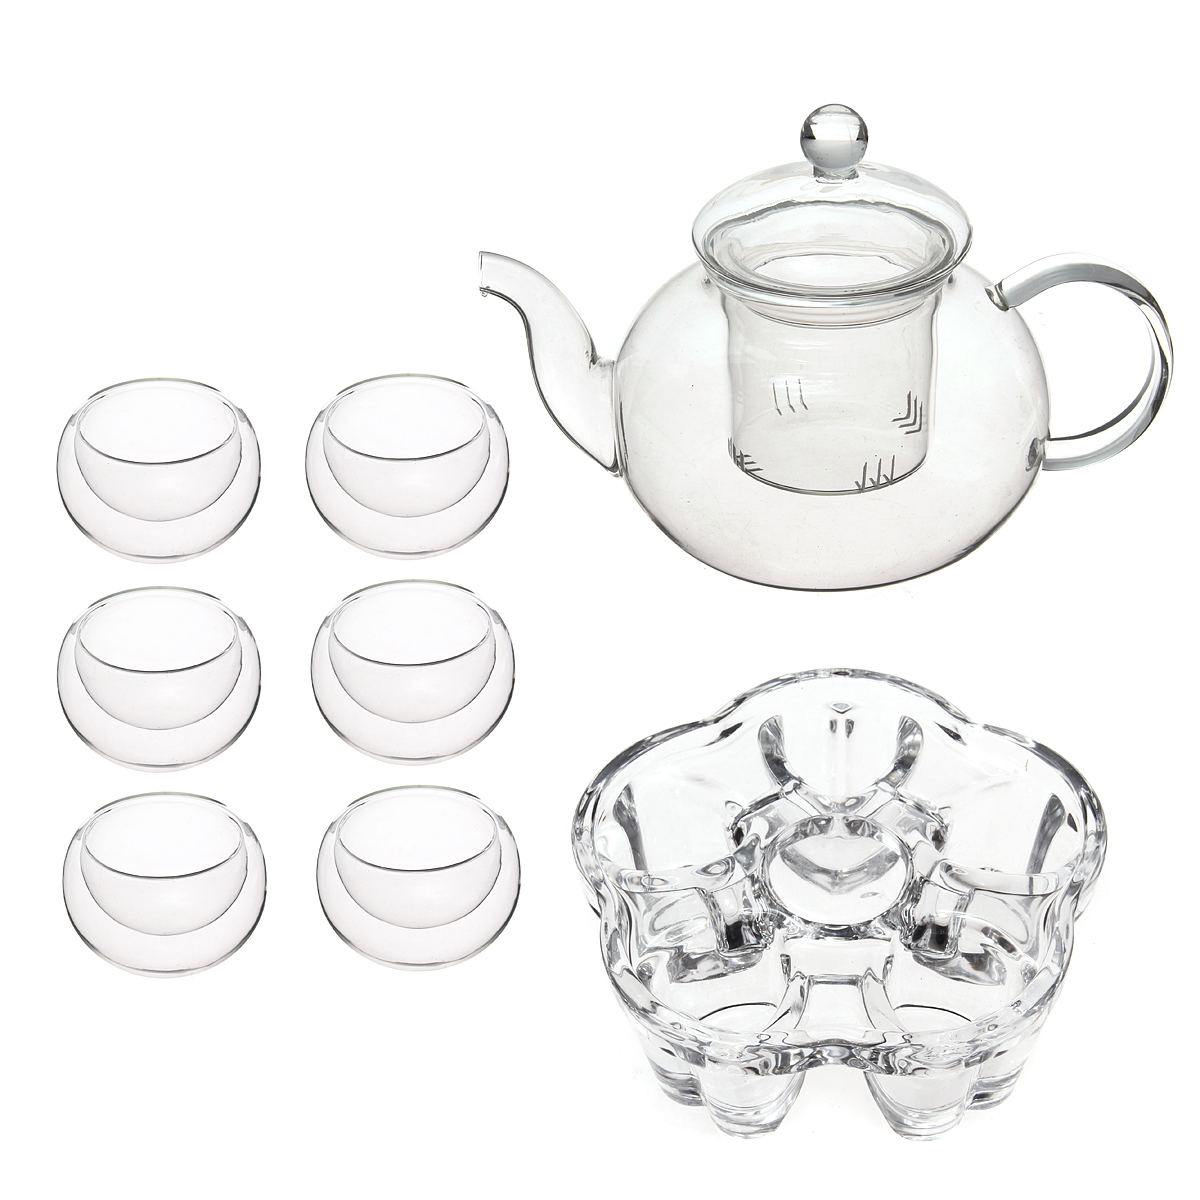 1200x1200 Chinese Gongfu Glass Tea Pot Set With Infuser Filter Tea Light